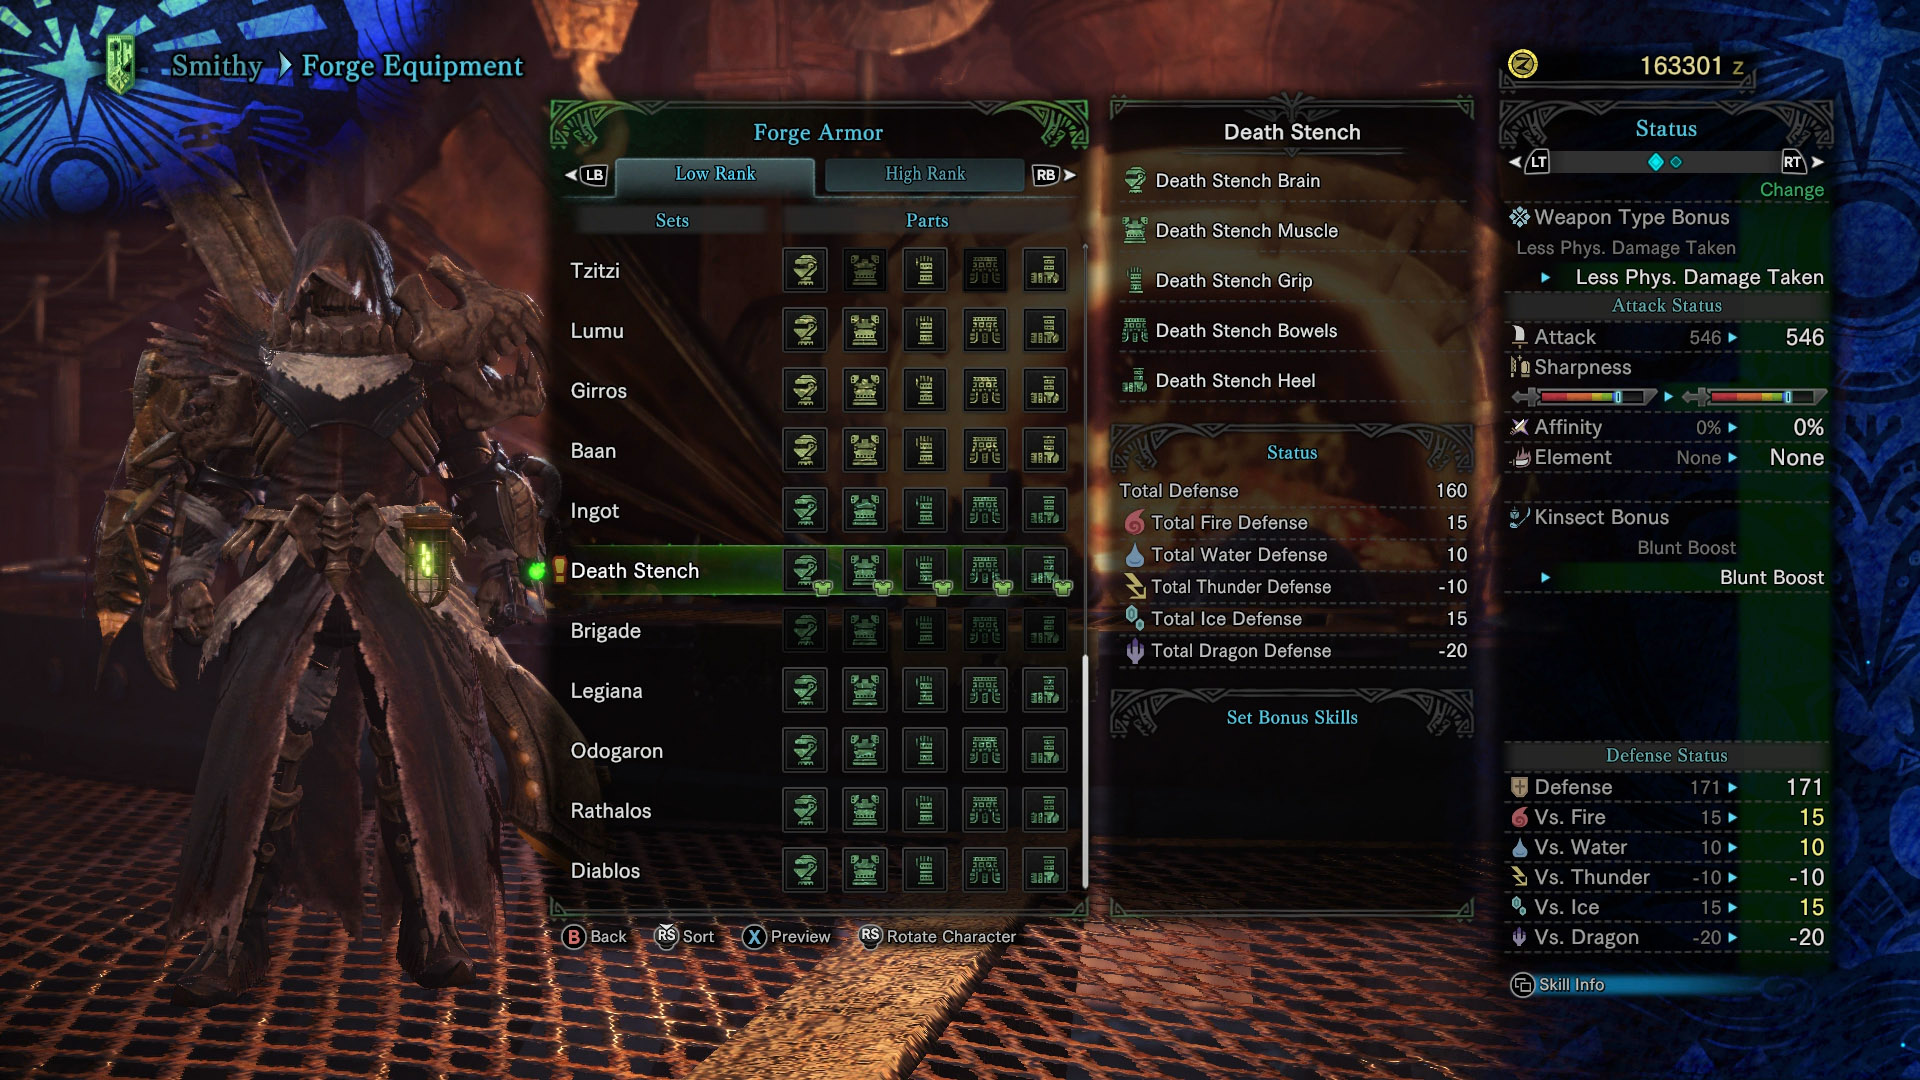 How to Get Death Stench Armor in Monster Hunter World